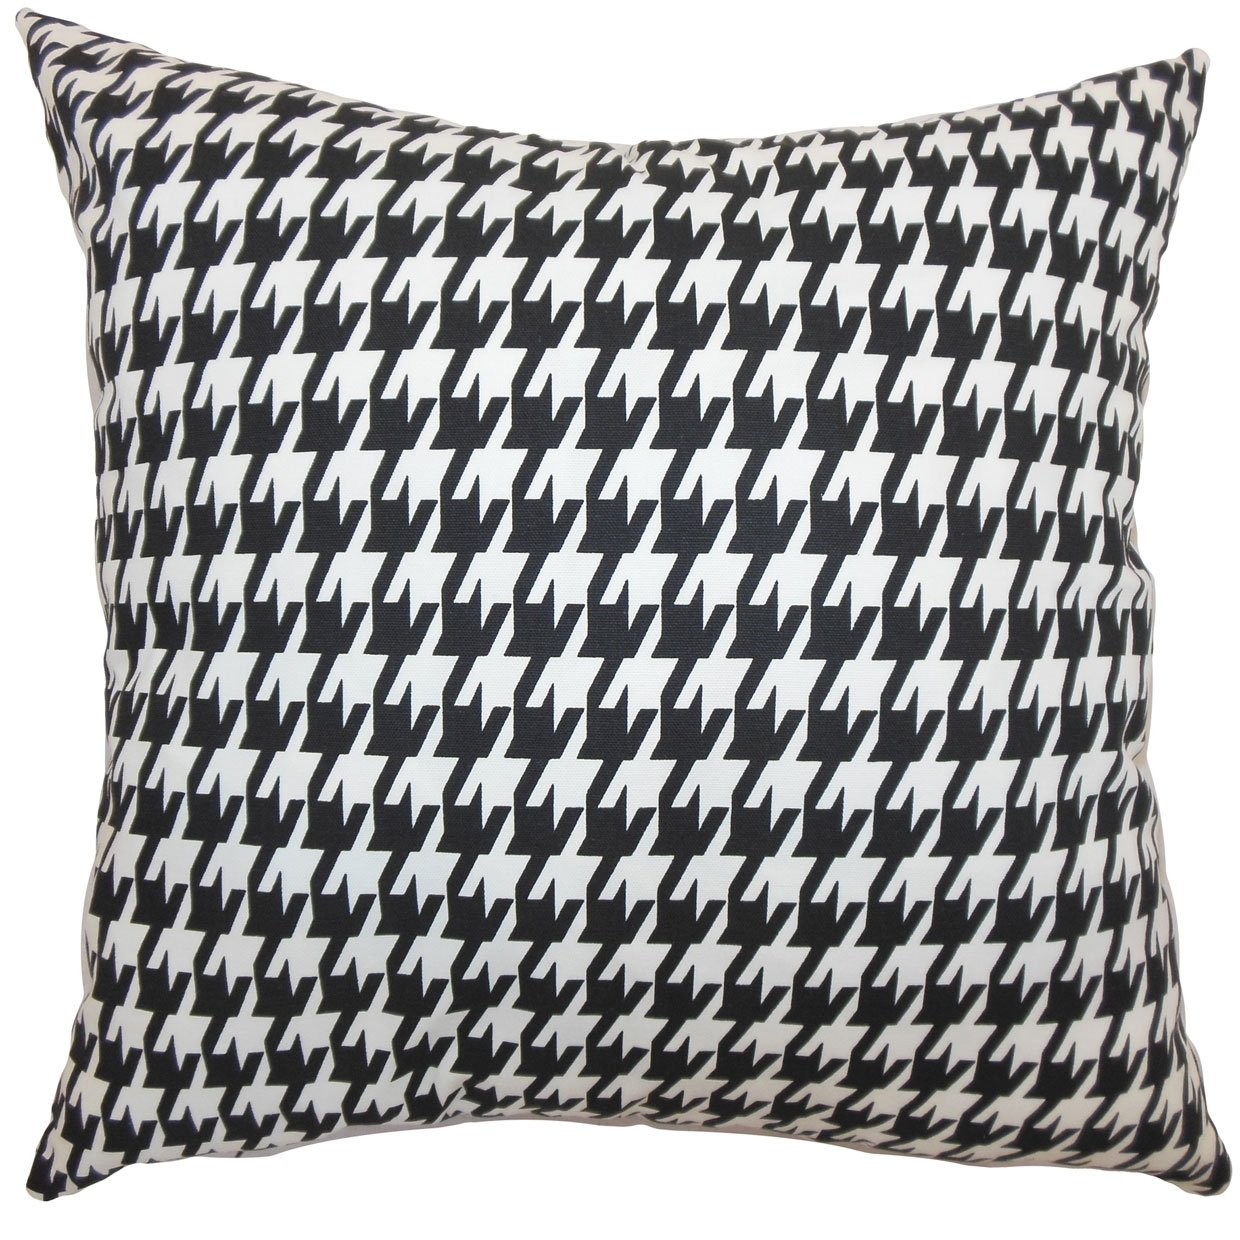 Amazon.com: The Pillow Collection Ceres Houndstooth Pillow, Black ...